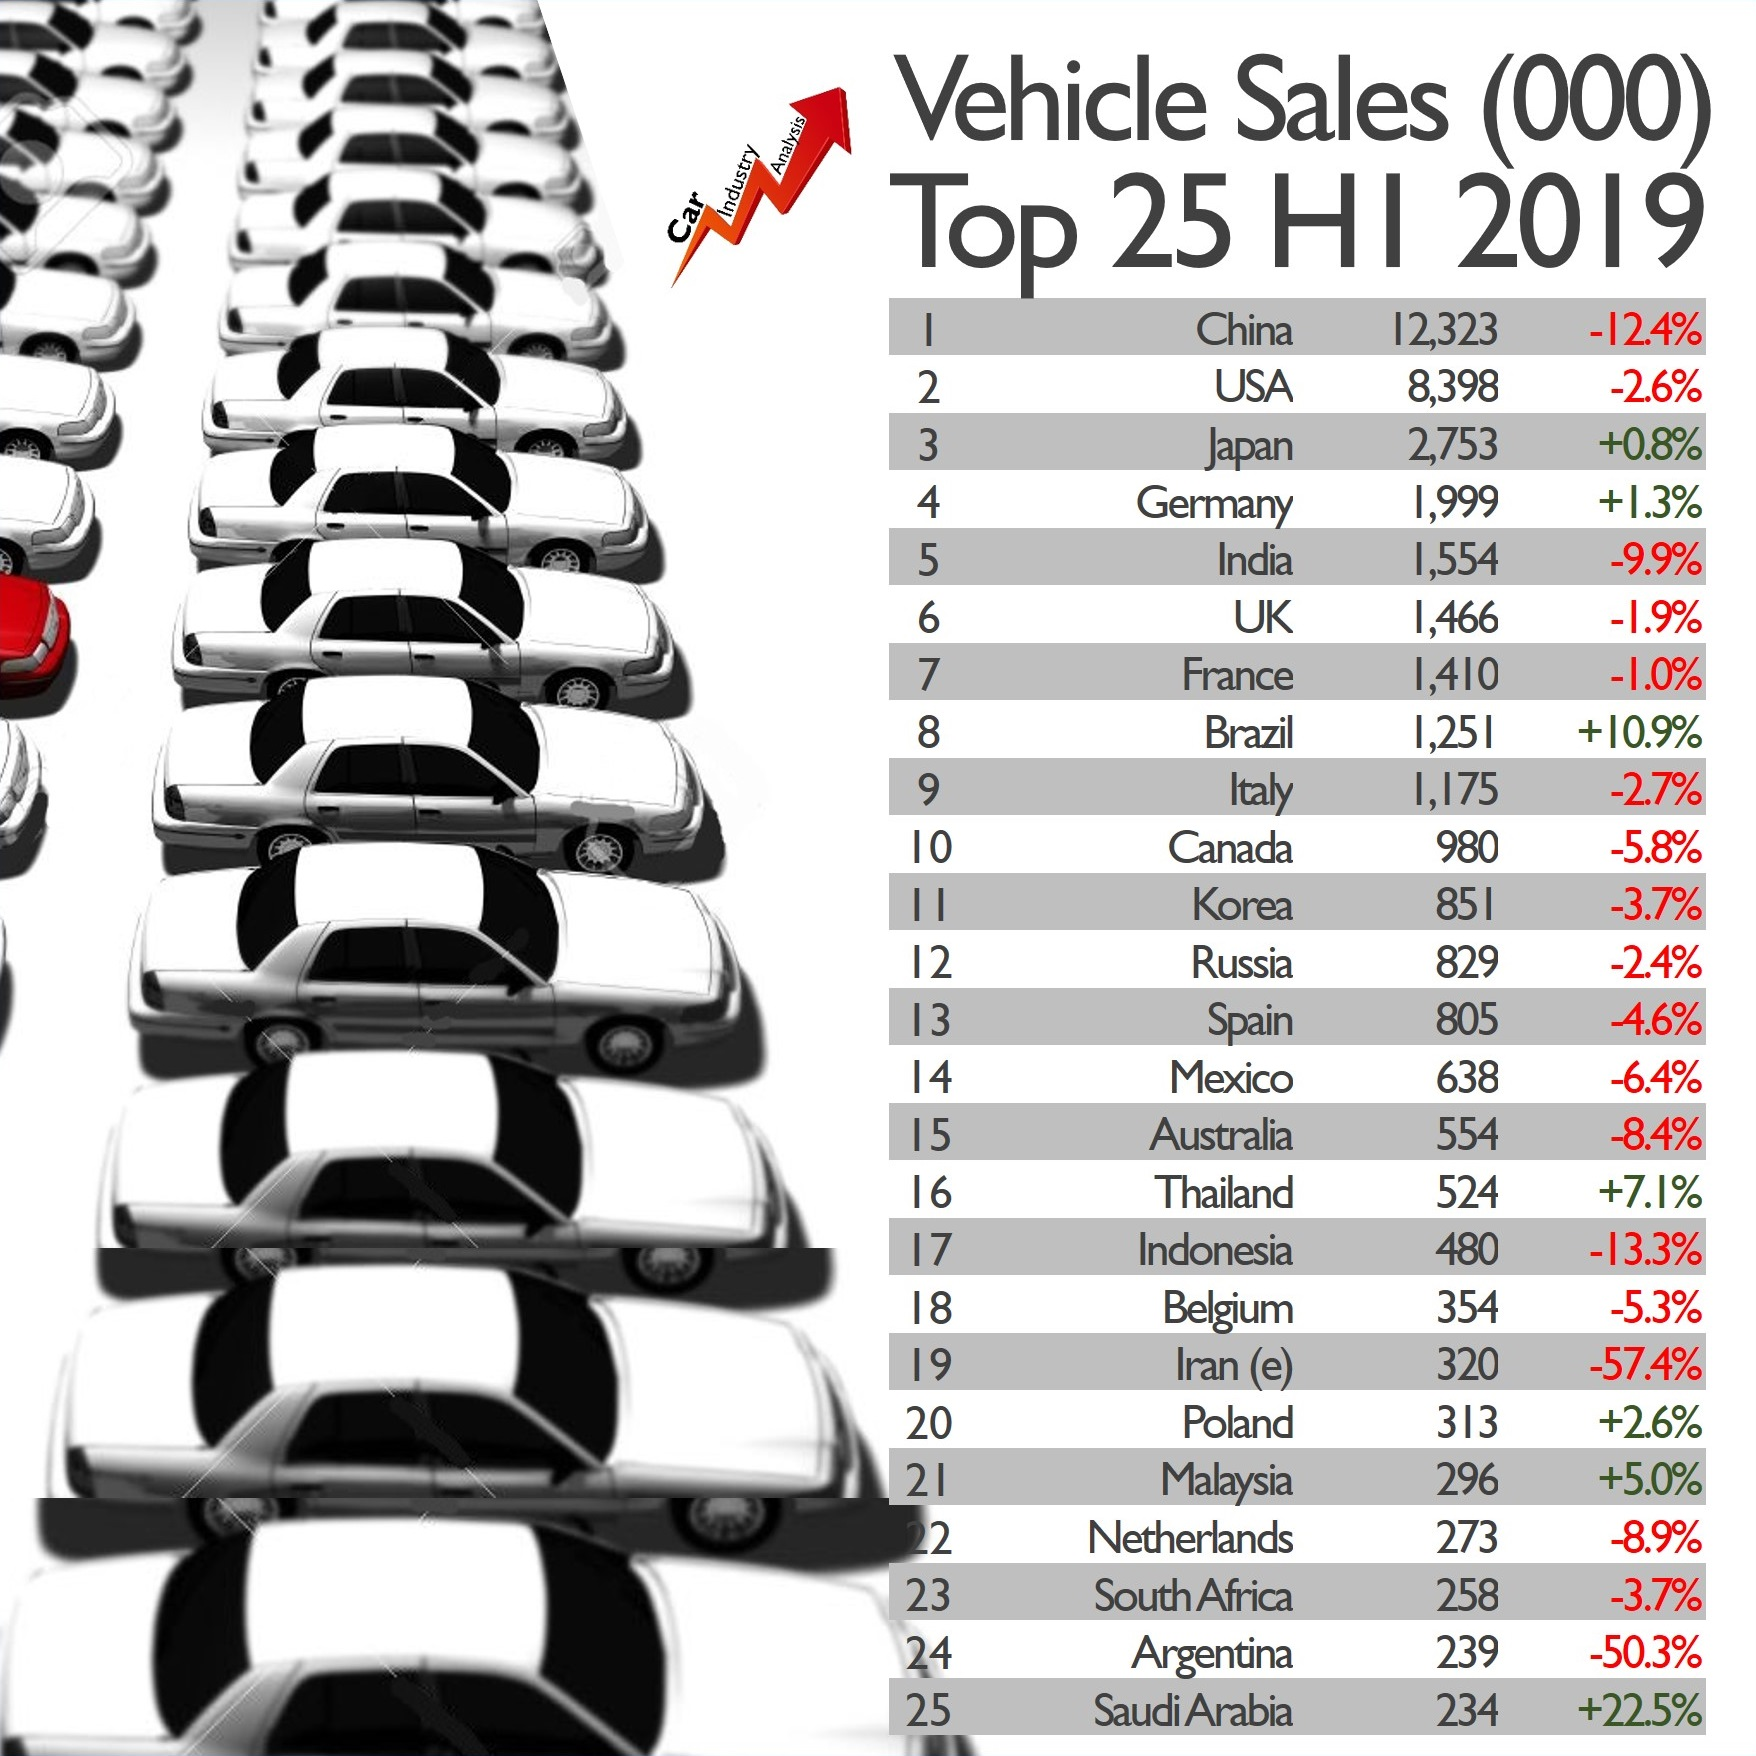 SUV Global Sales Fall In H1 2019. FCA Loses Ground